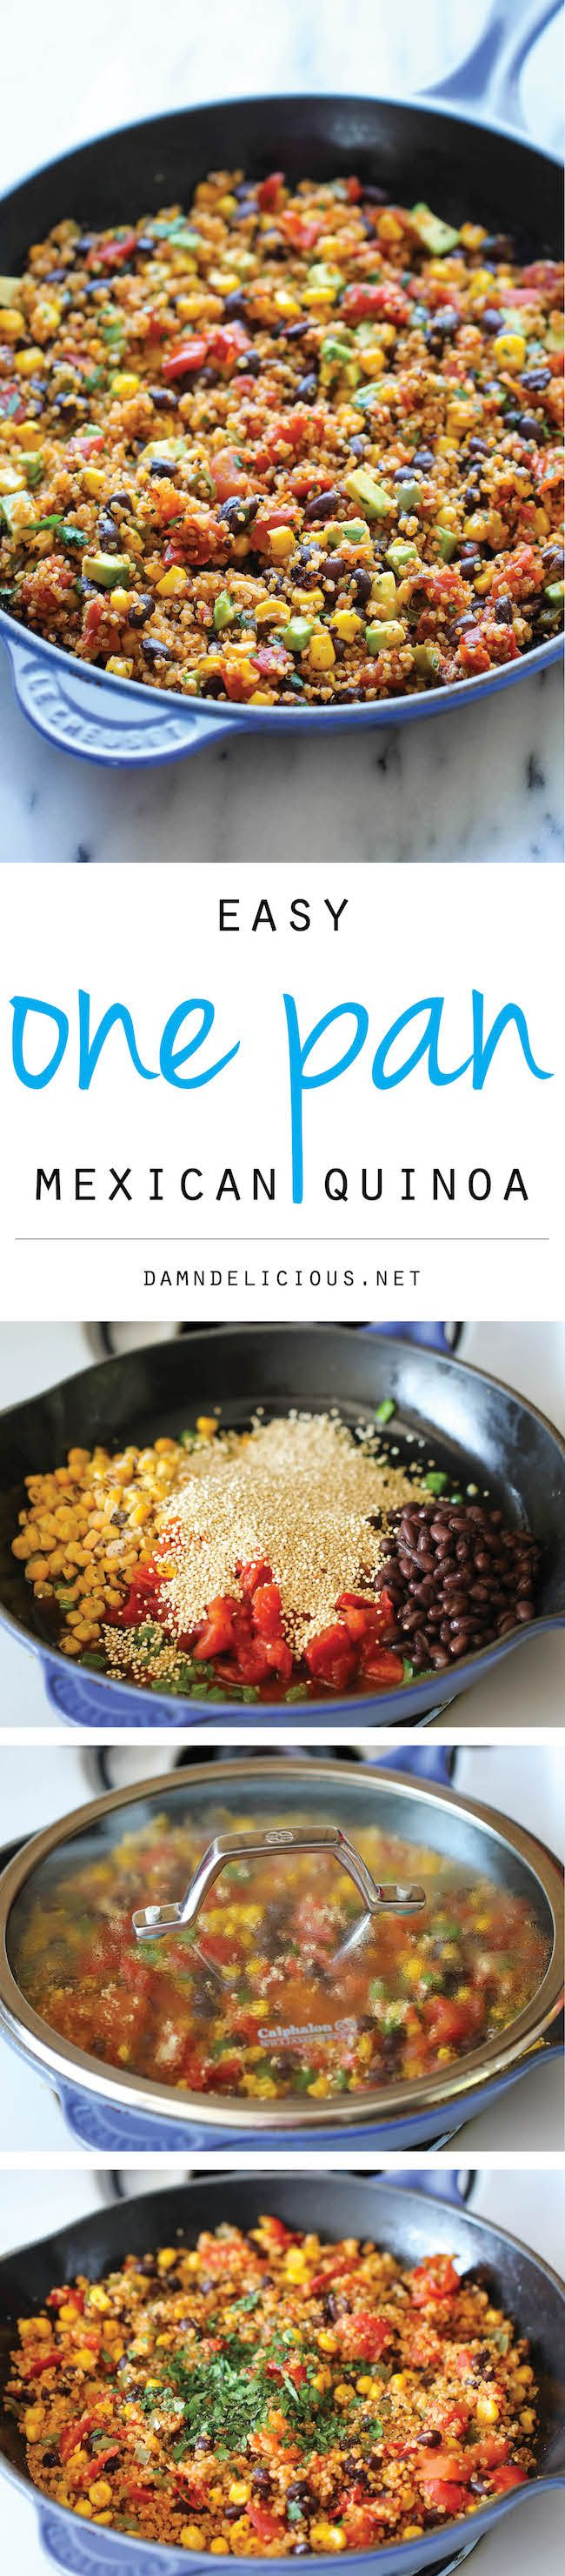 One Pan Mexican Quinoa: wonderfully light, healthy and nutritious - it's so easy…